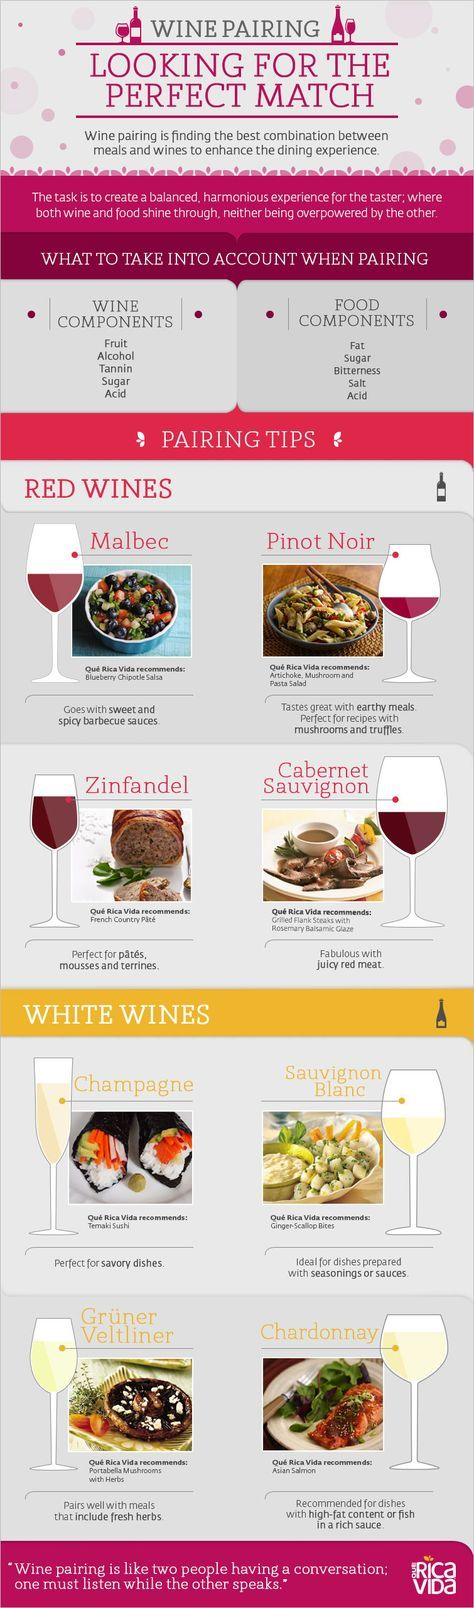 Wine Pairing. Looking For The Perfect Match.